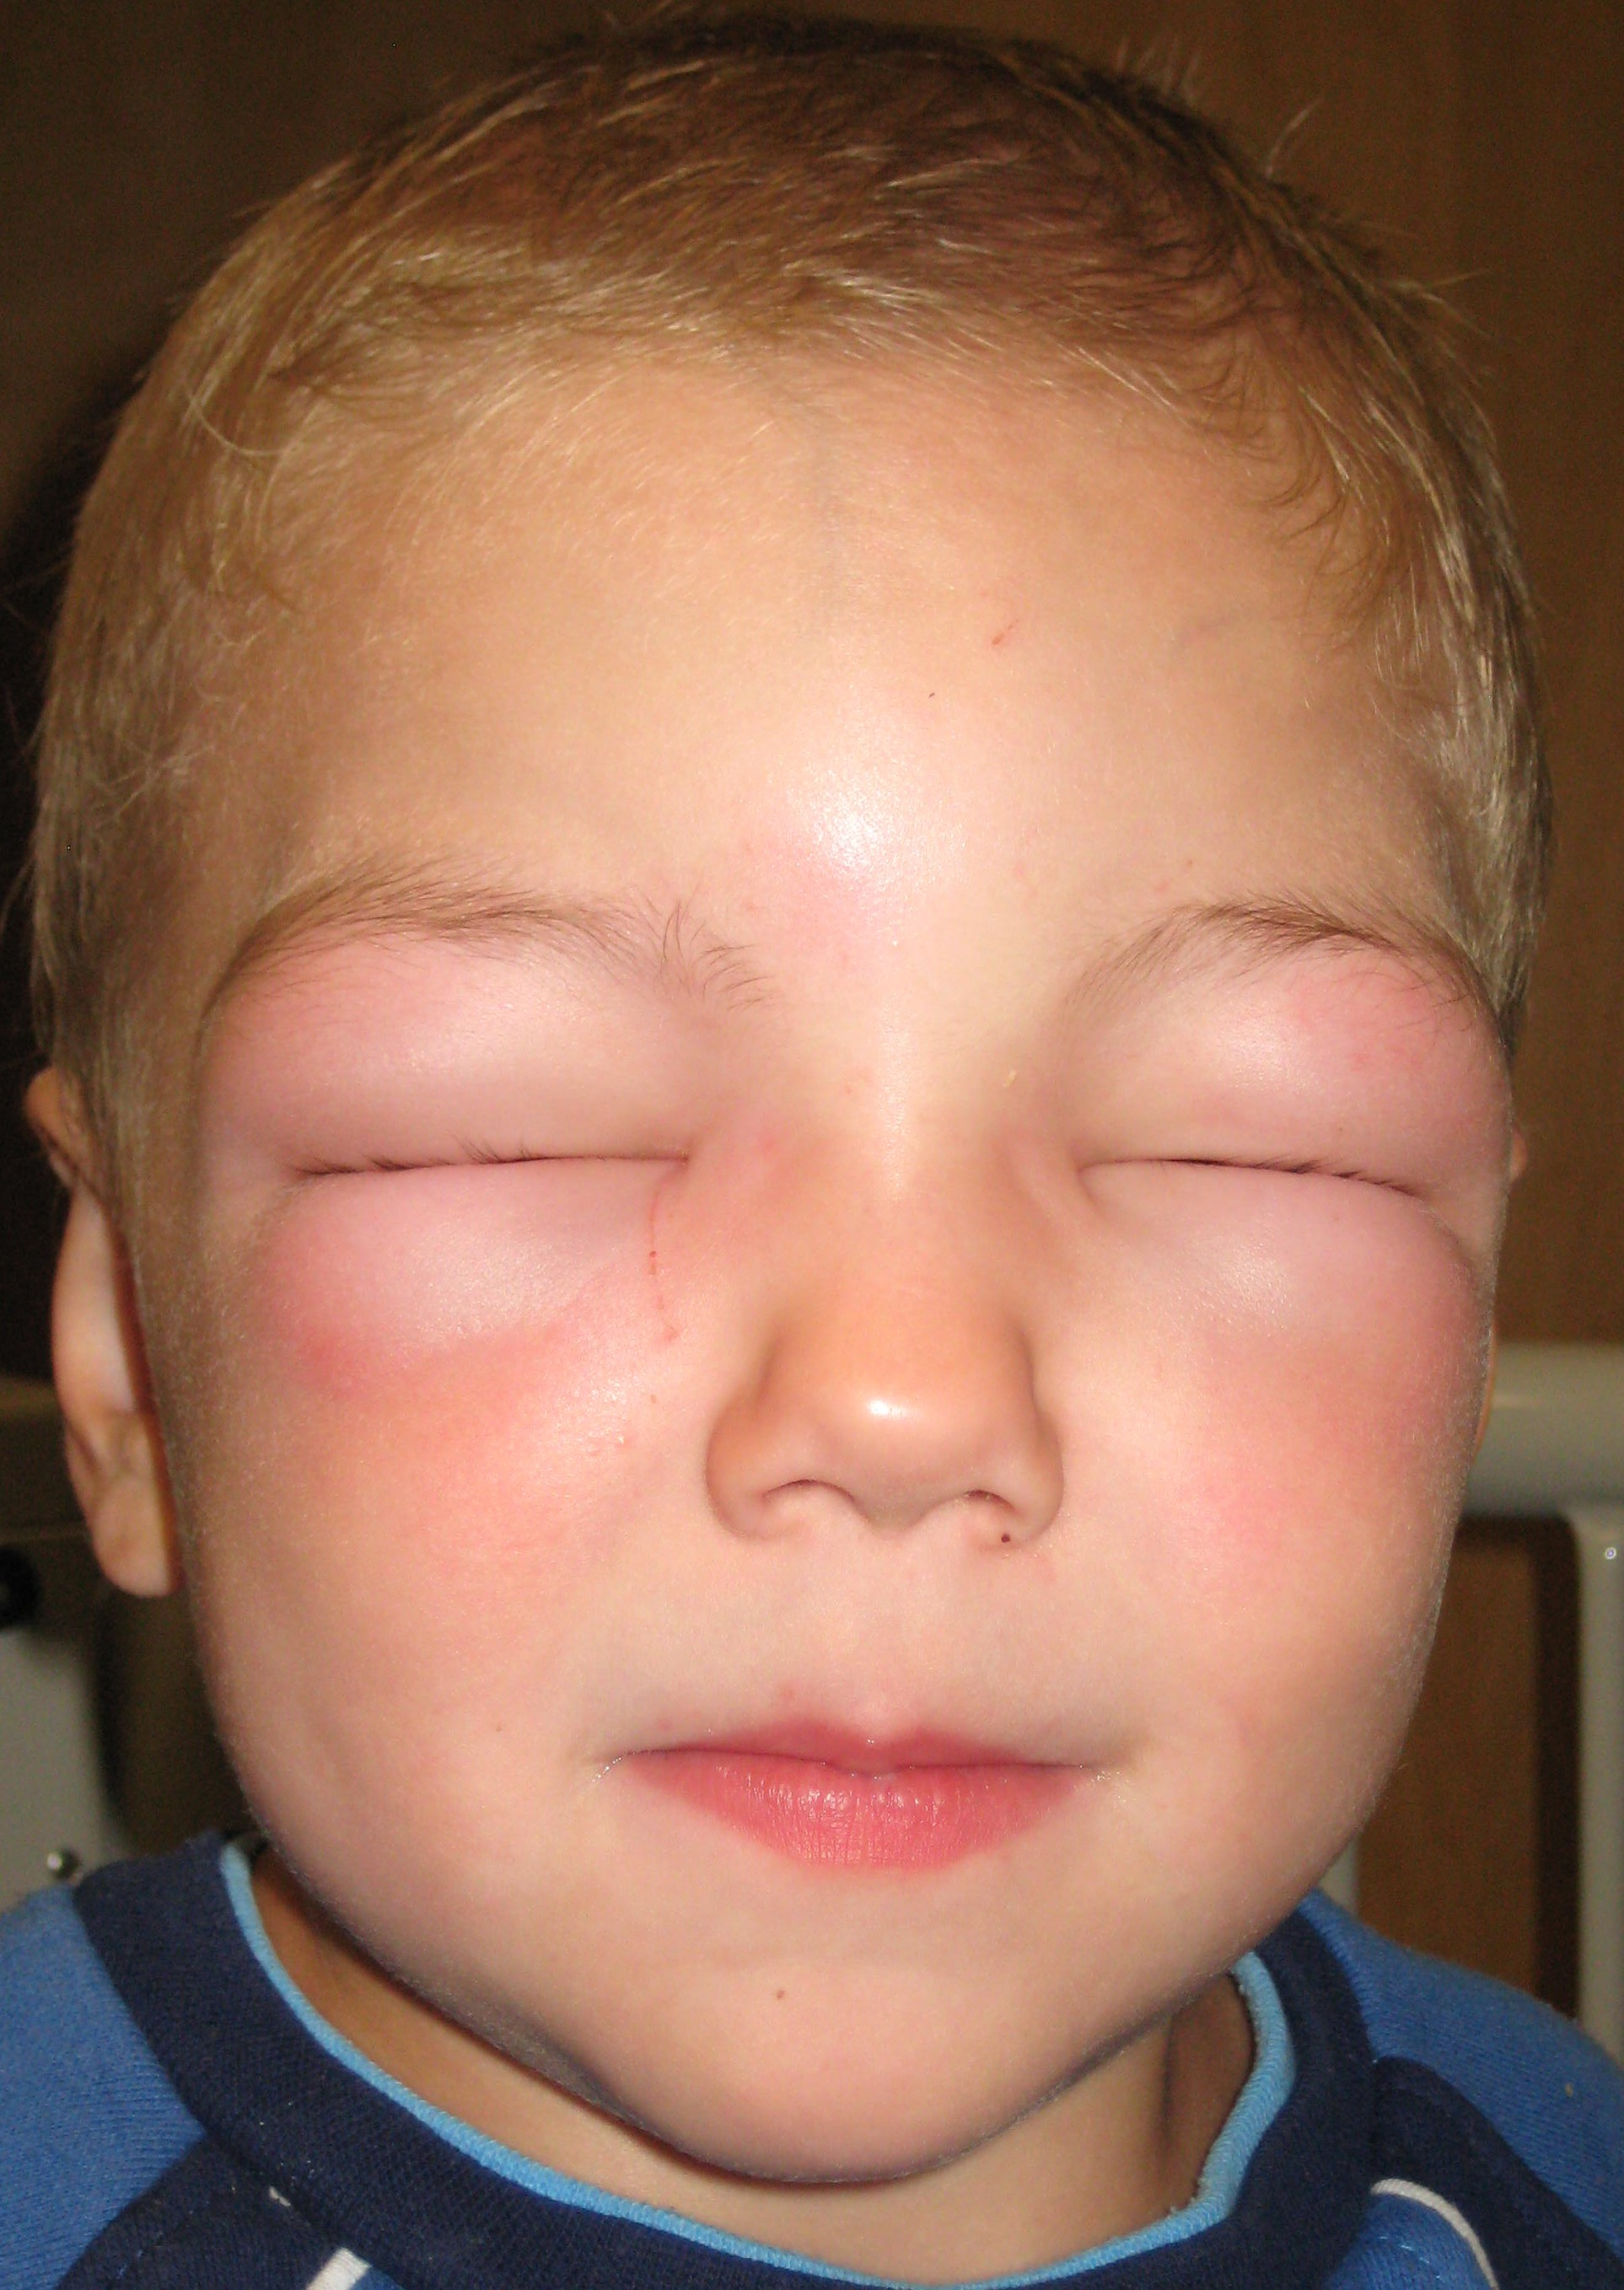 Get Rid Of Eczema On Your Eyelids Without Side Effects!